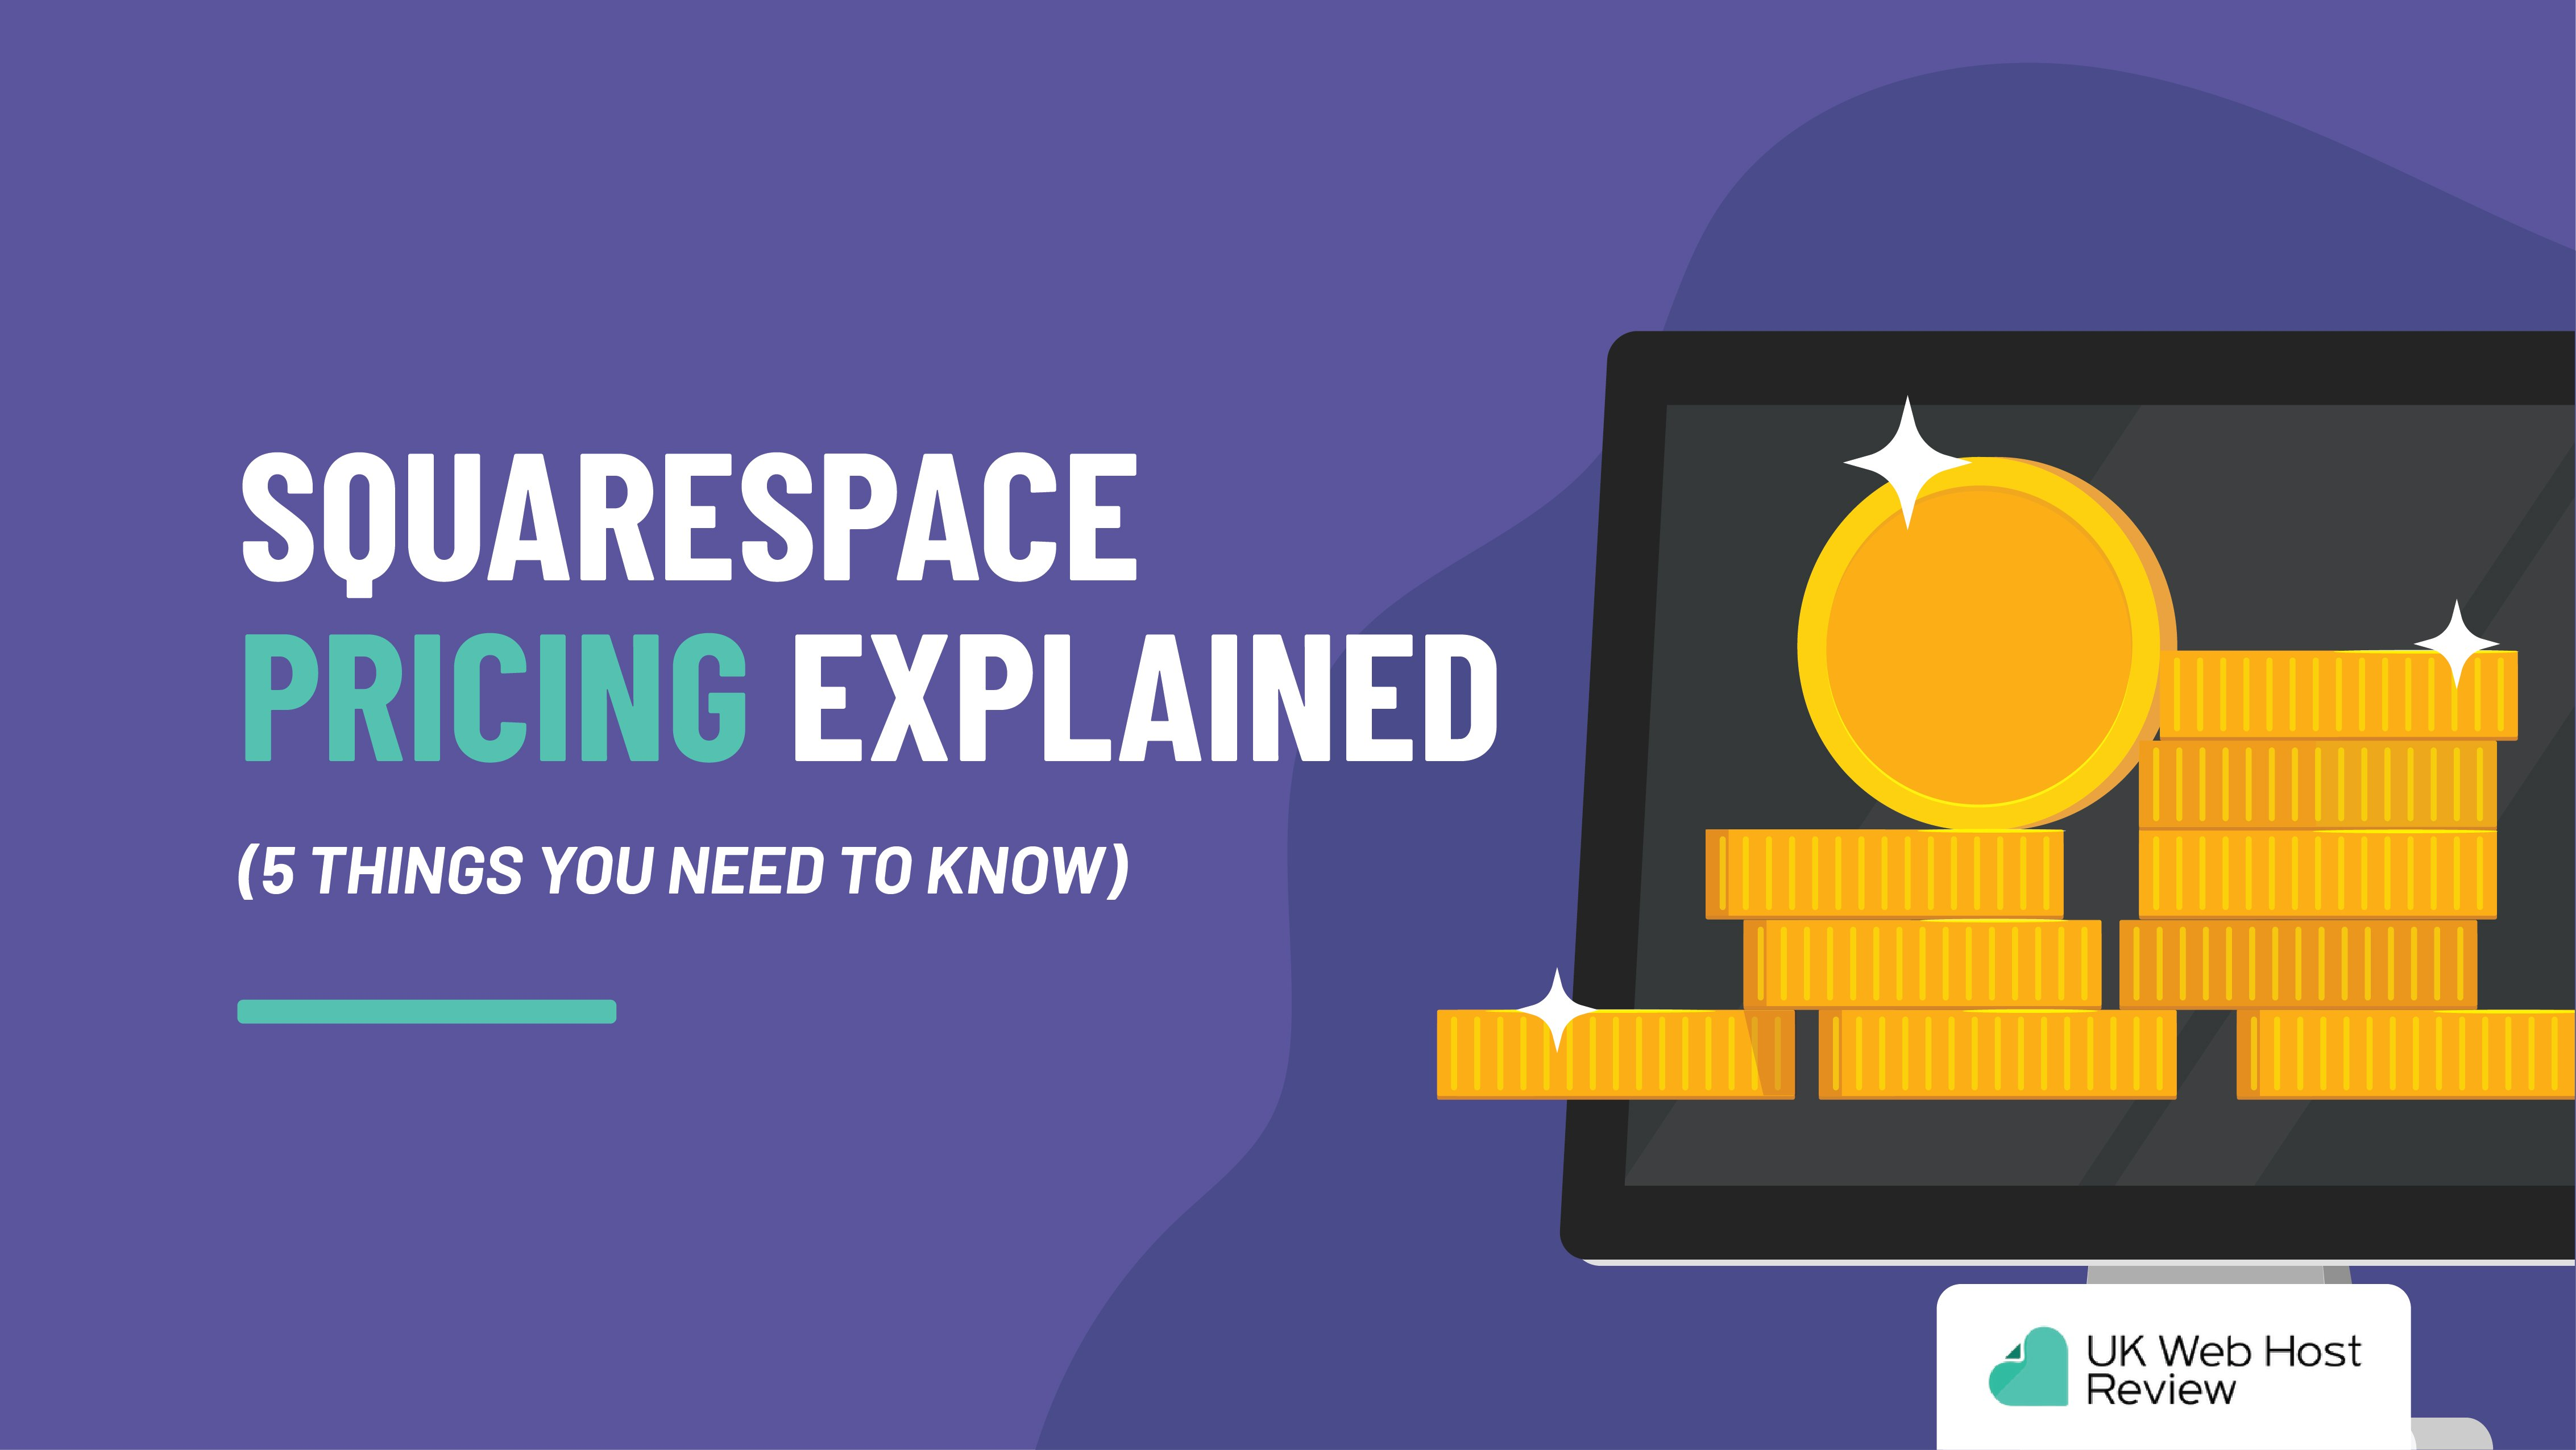 Squarespace Pricing Explained (5 Things You Need to Know)